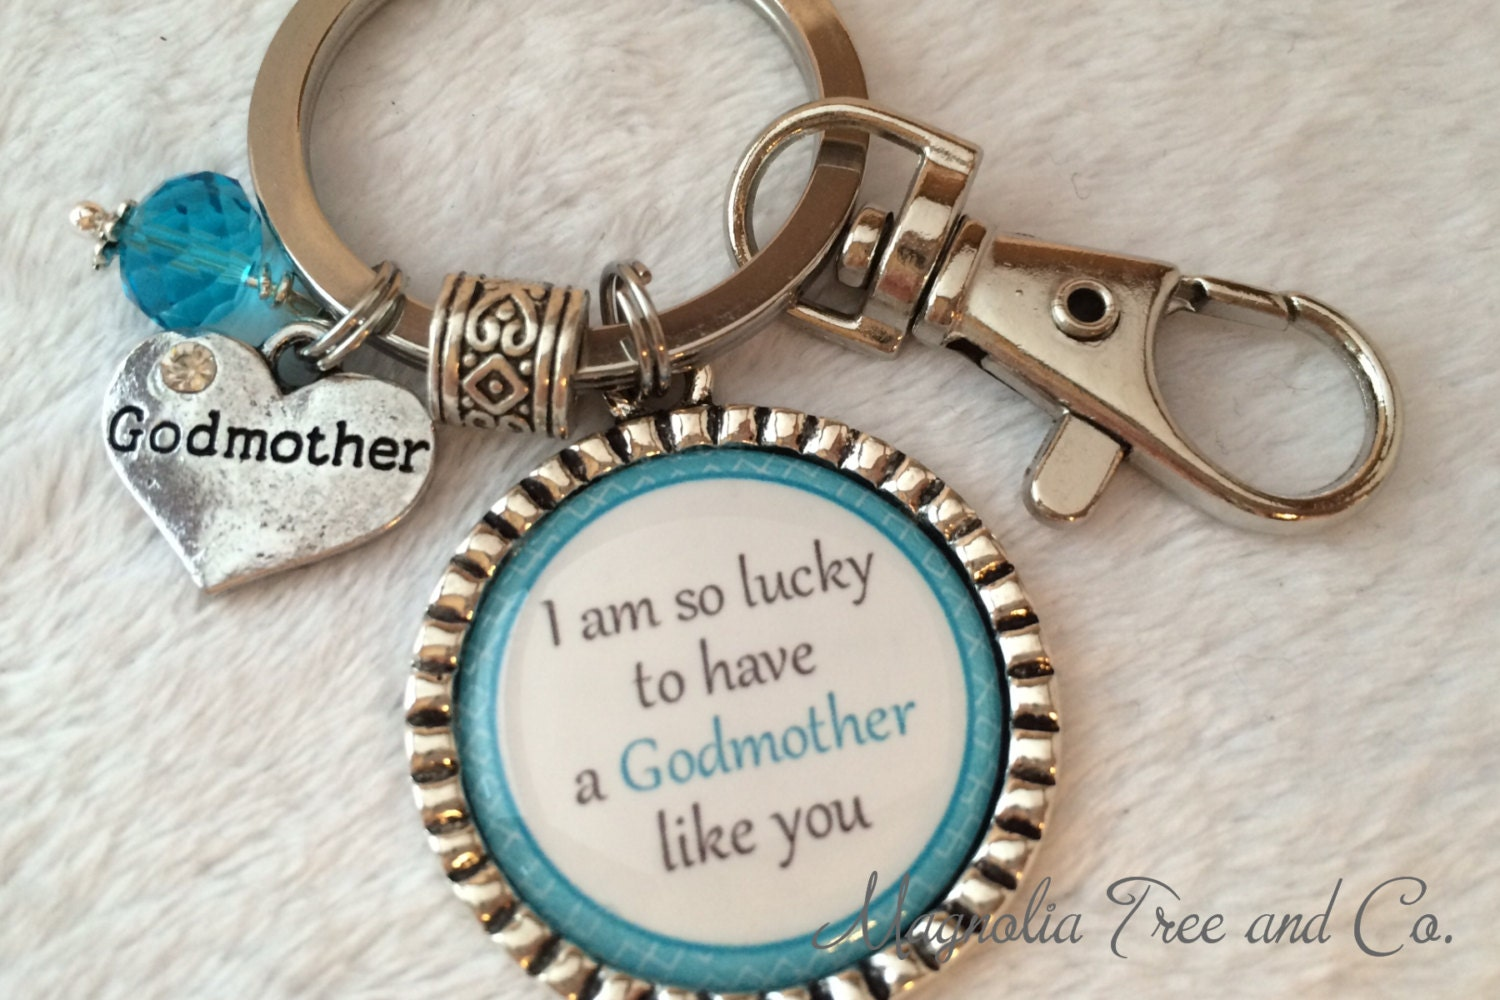 Godmother Gift Godparent Gift Personalized Gift For: GODMOTHER Personalized Gift For Godparents Christening